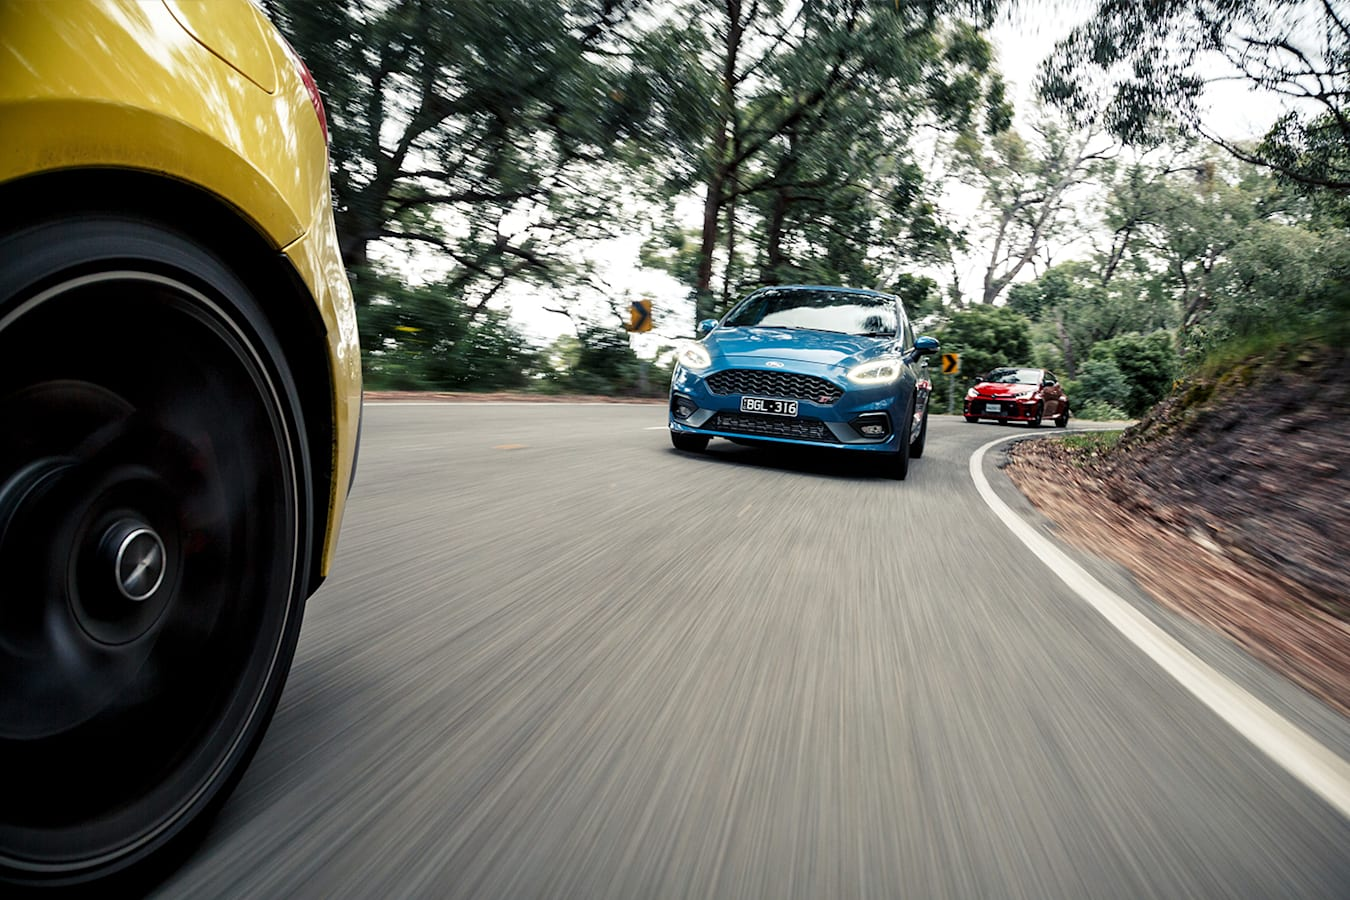 PCOTY ROAD Group Hatches Tracking Jpg